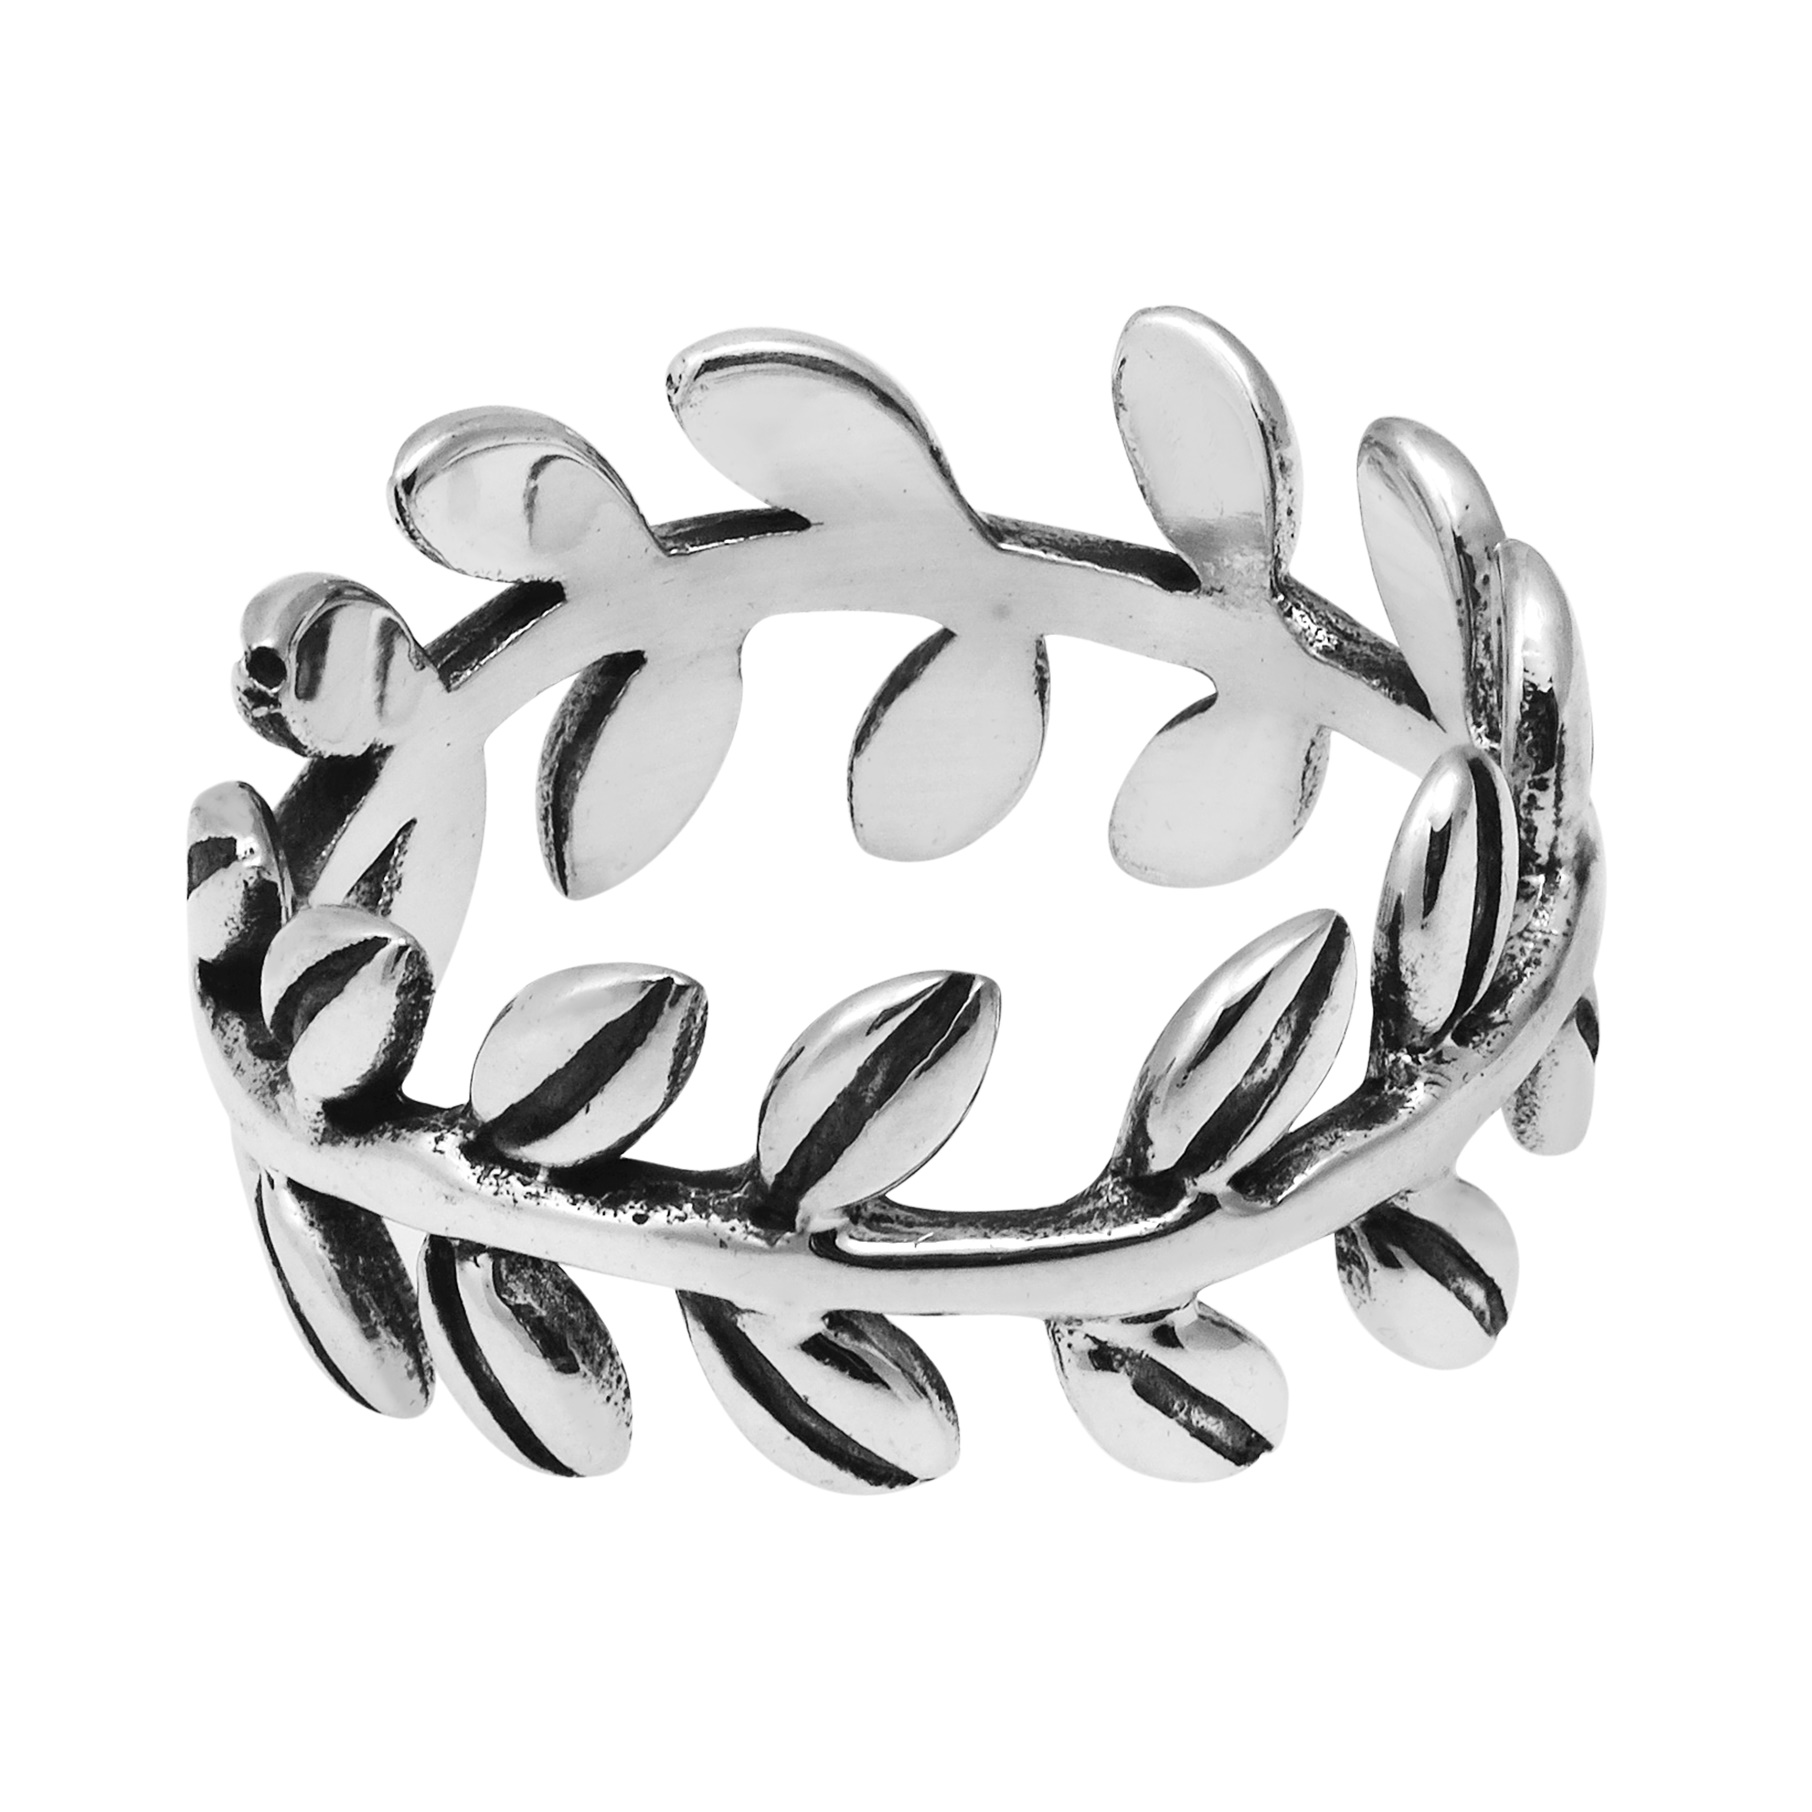 Symbolic greek nature ivy leaf wrap eternity band sterling silver thai artisan katsaya crafts this band ring by hand portraying silver ivy leaf forms enhanced with natural oxidized contrasts made from sterling silver 925 biocorpaavc Gallery